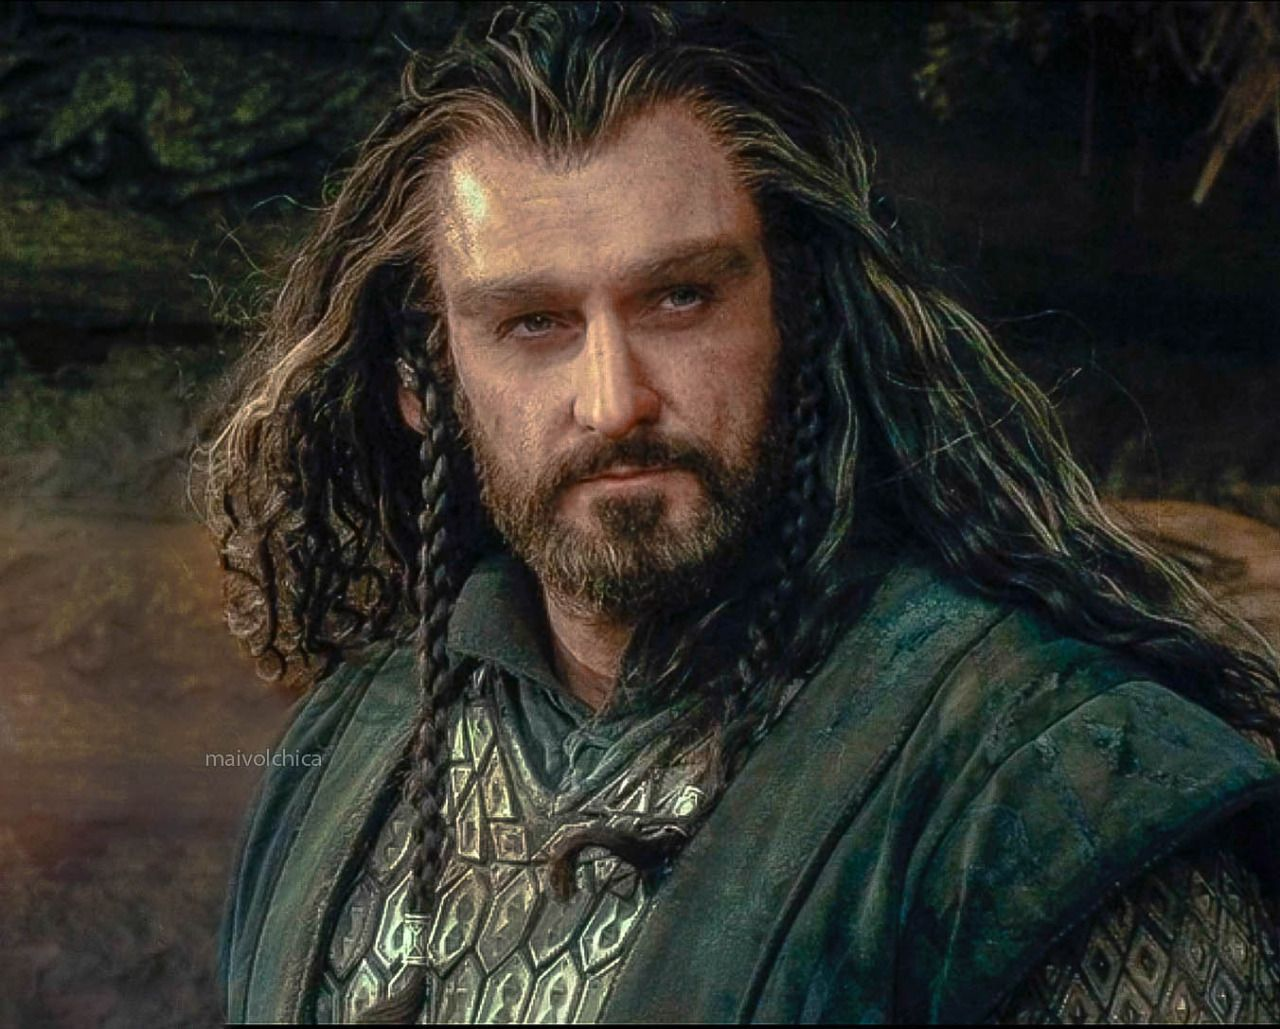 Thorin assessing, calculating, wondering. Is this skinchanger a friend or a threat? What should their next moves be?